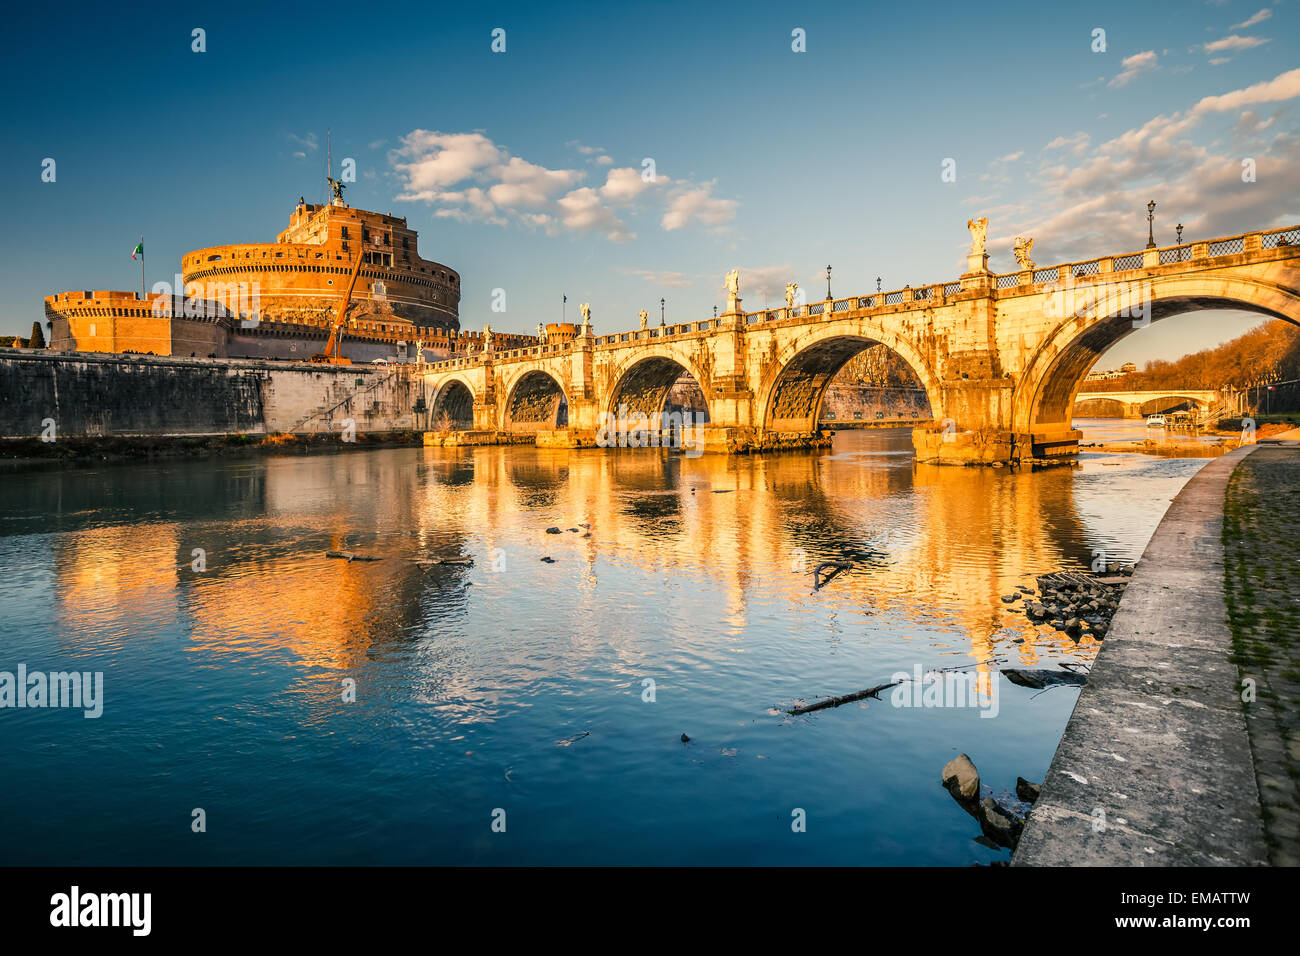 Sant'Angelo fortress, Rome Photo Stock